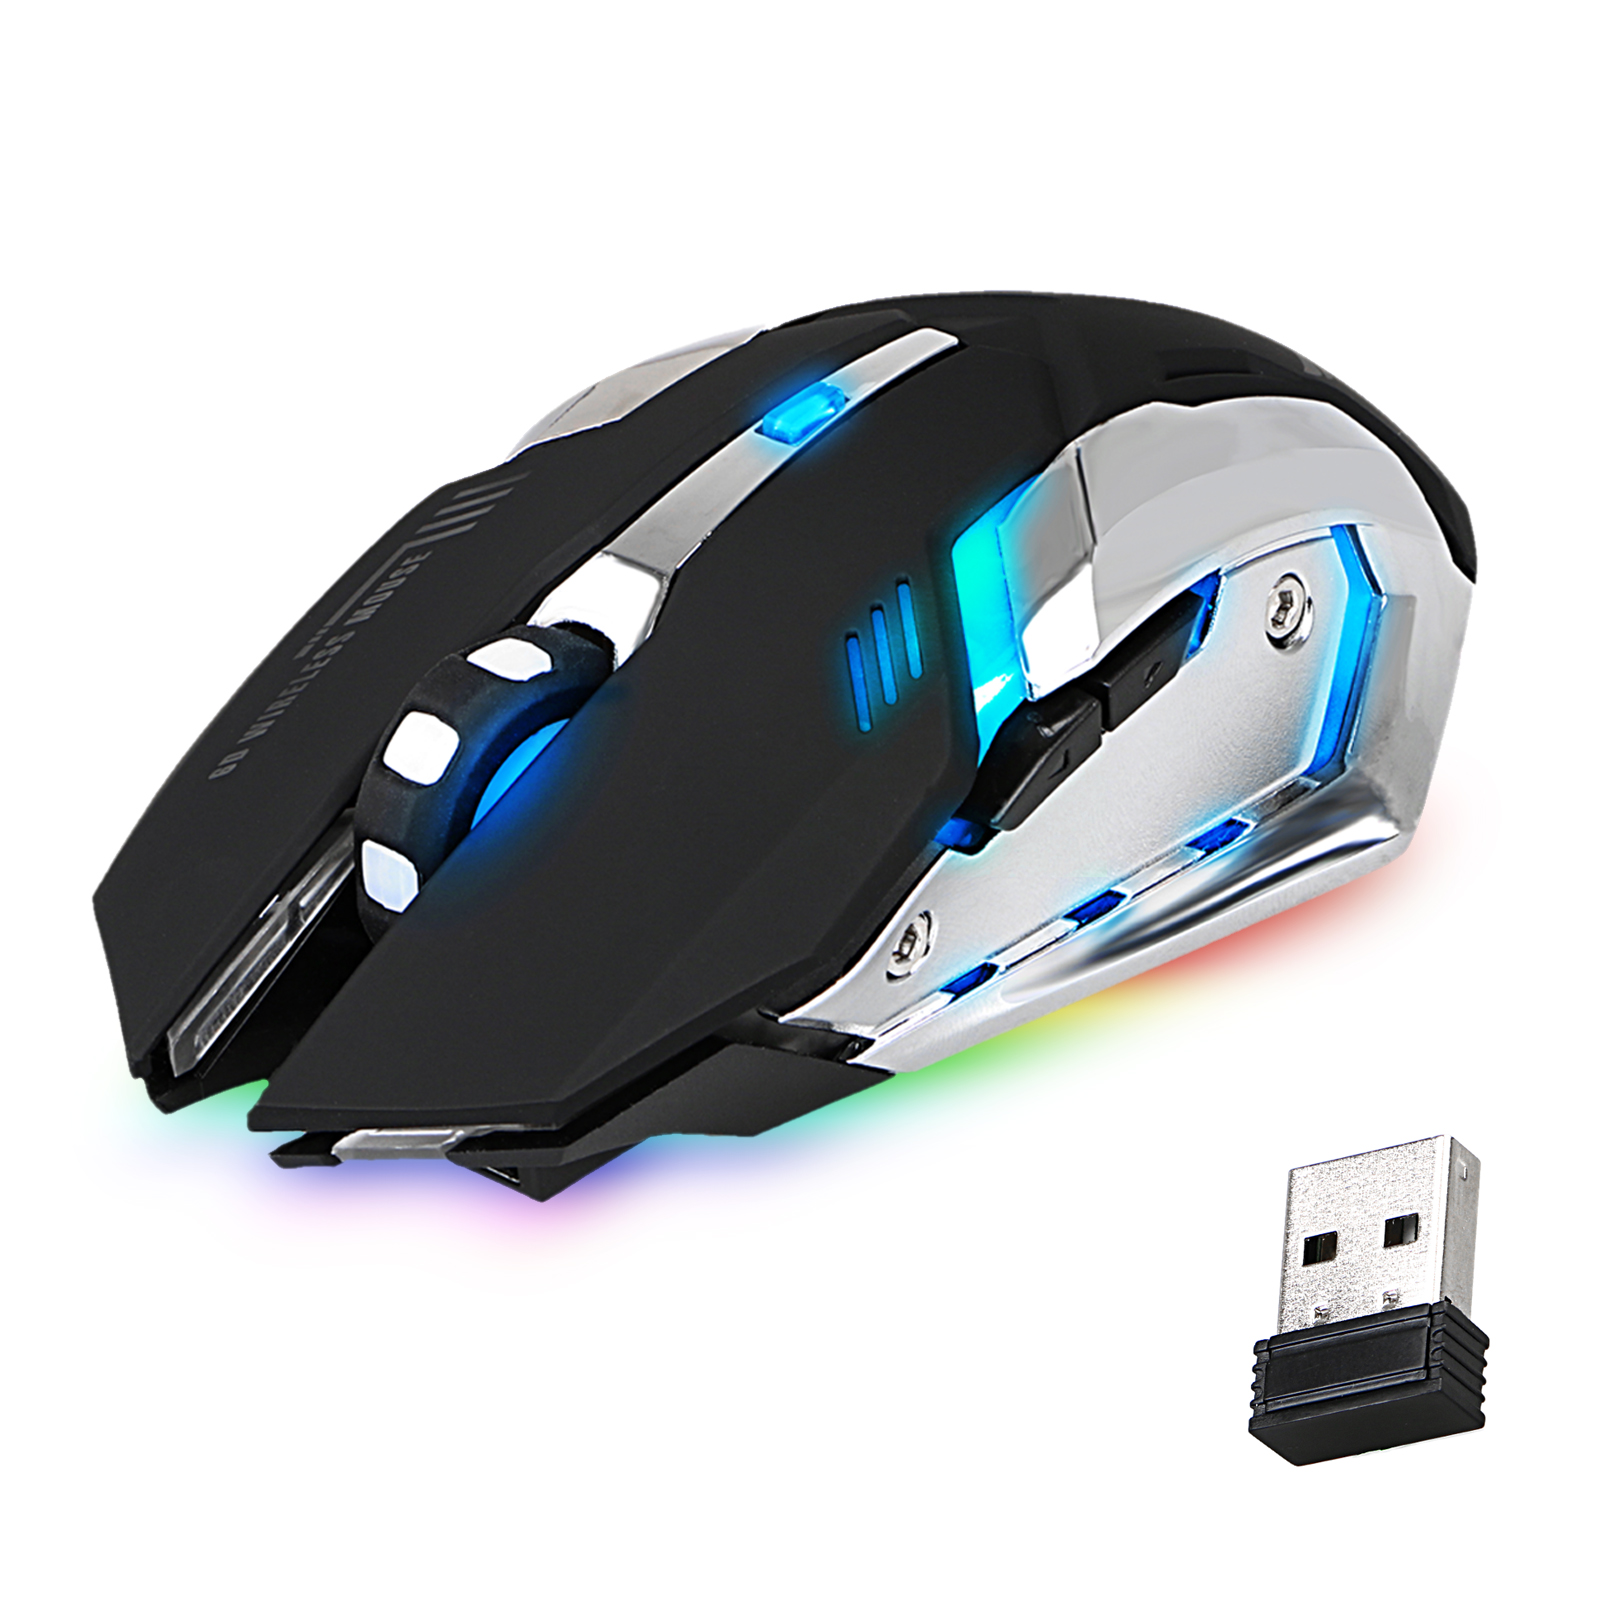 TSV Wireless Gaming mouse, 5 Programmable Buttons, 4 Adjustable DPI Levels, 7 Color LED Backlit, Used for games and office